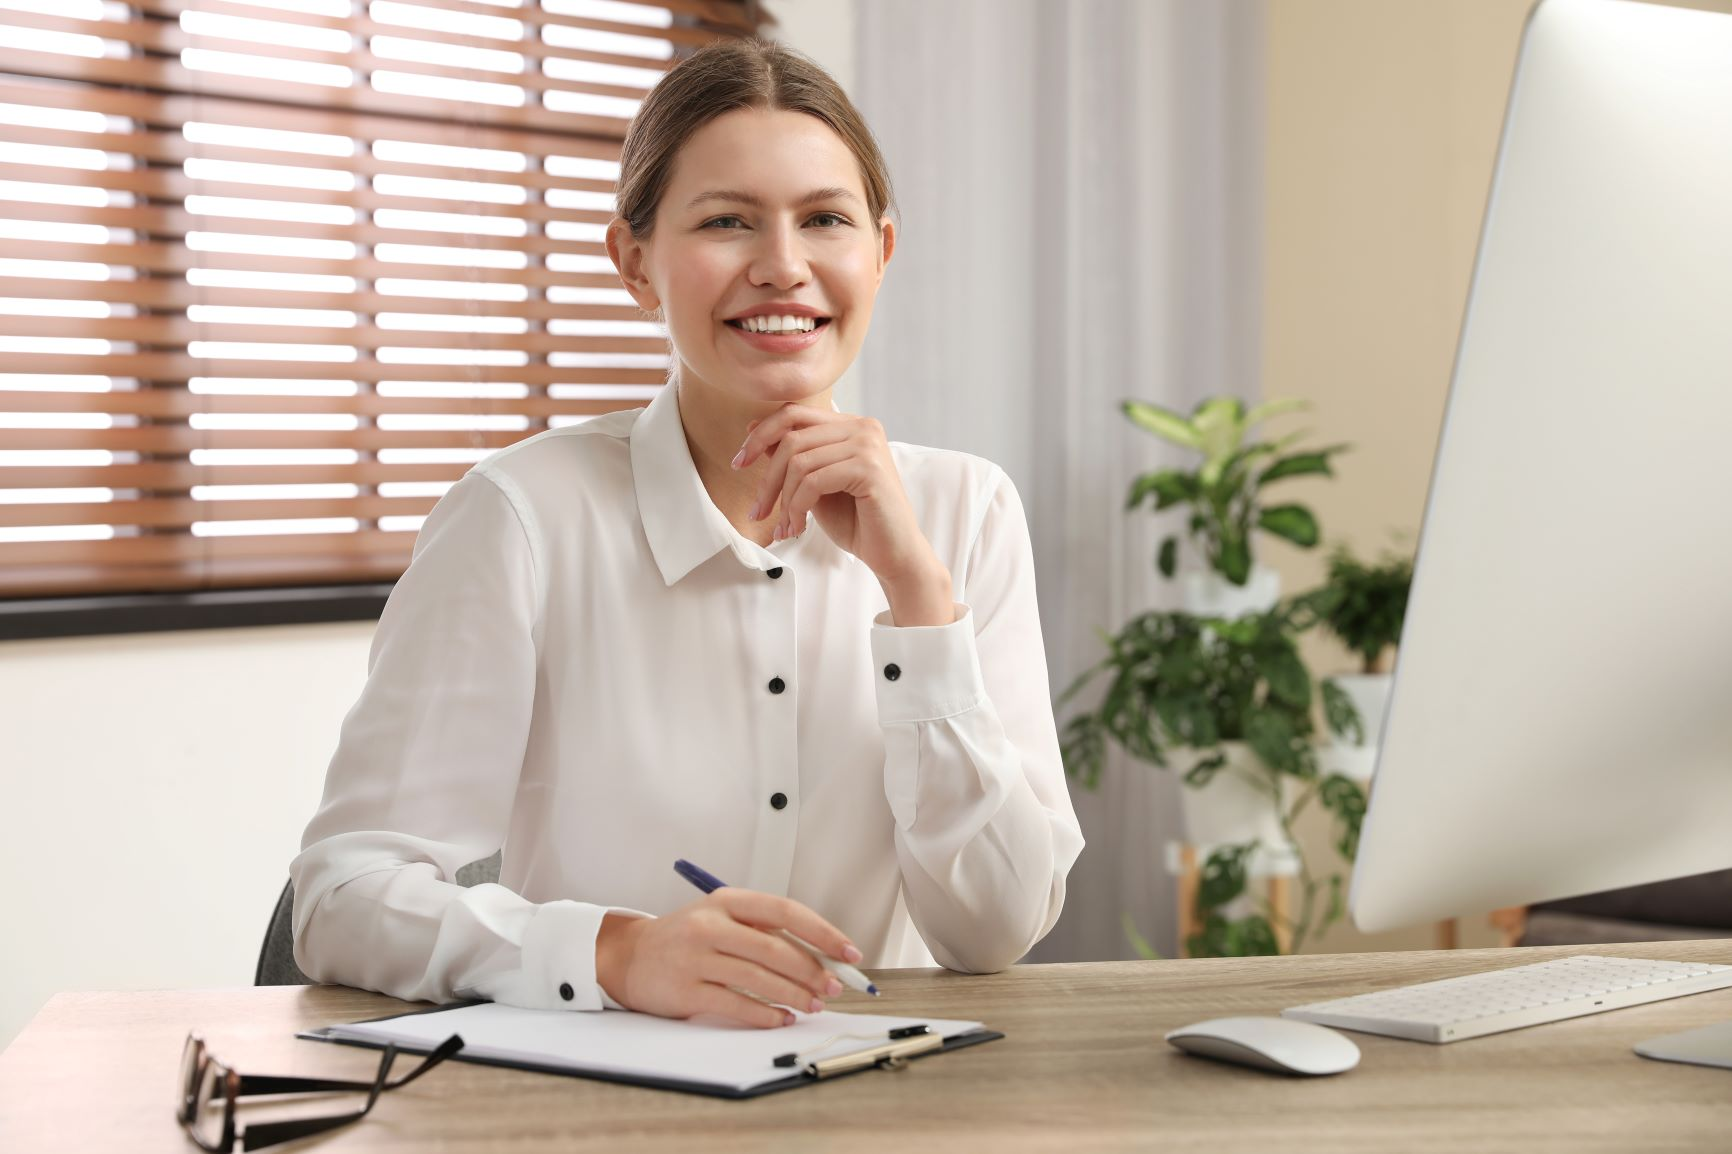 Psychiatrist collecting patients diaries through telepsychiatry software s